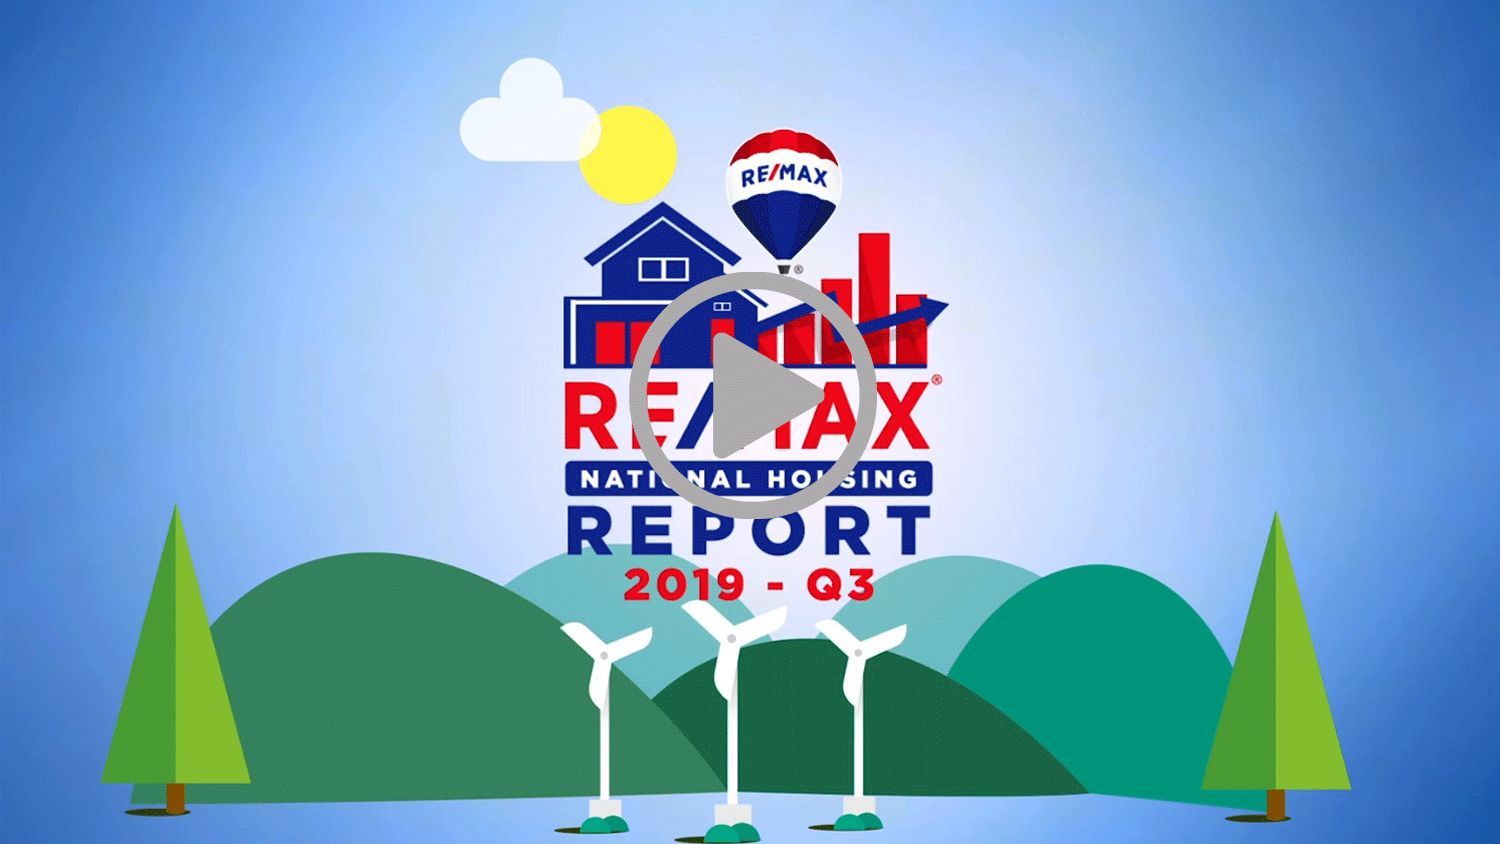 RE/MAX National Housing Report Q3 2019